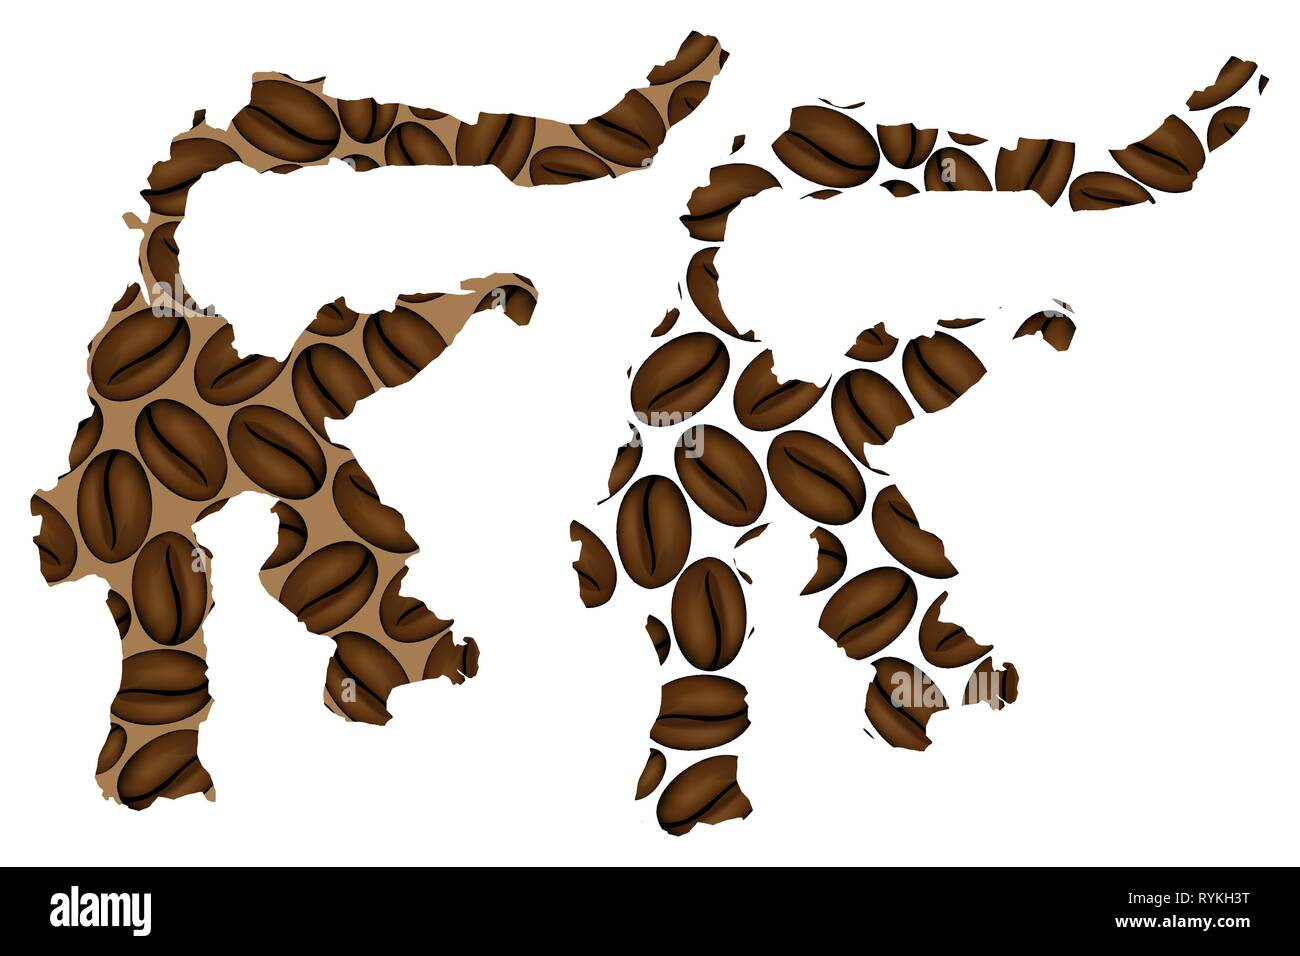 Sulawesi (Celebes) -  map of coffee bean, Sulawesi (Republic of Indonesia) map made of coffee beans, - Stock Image